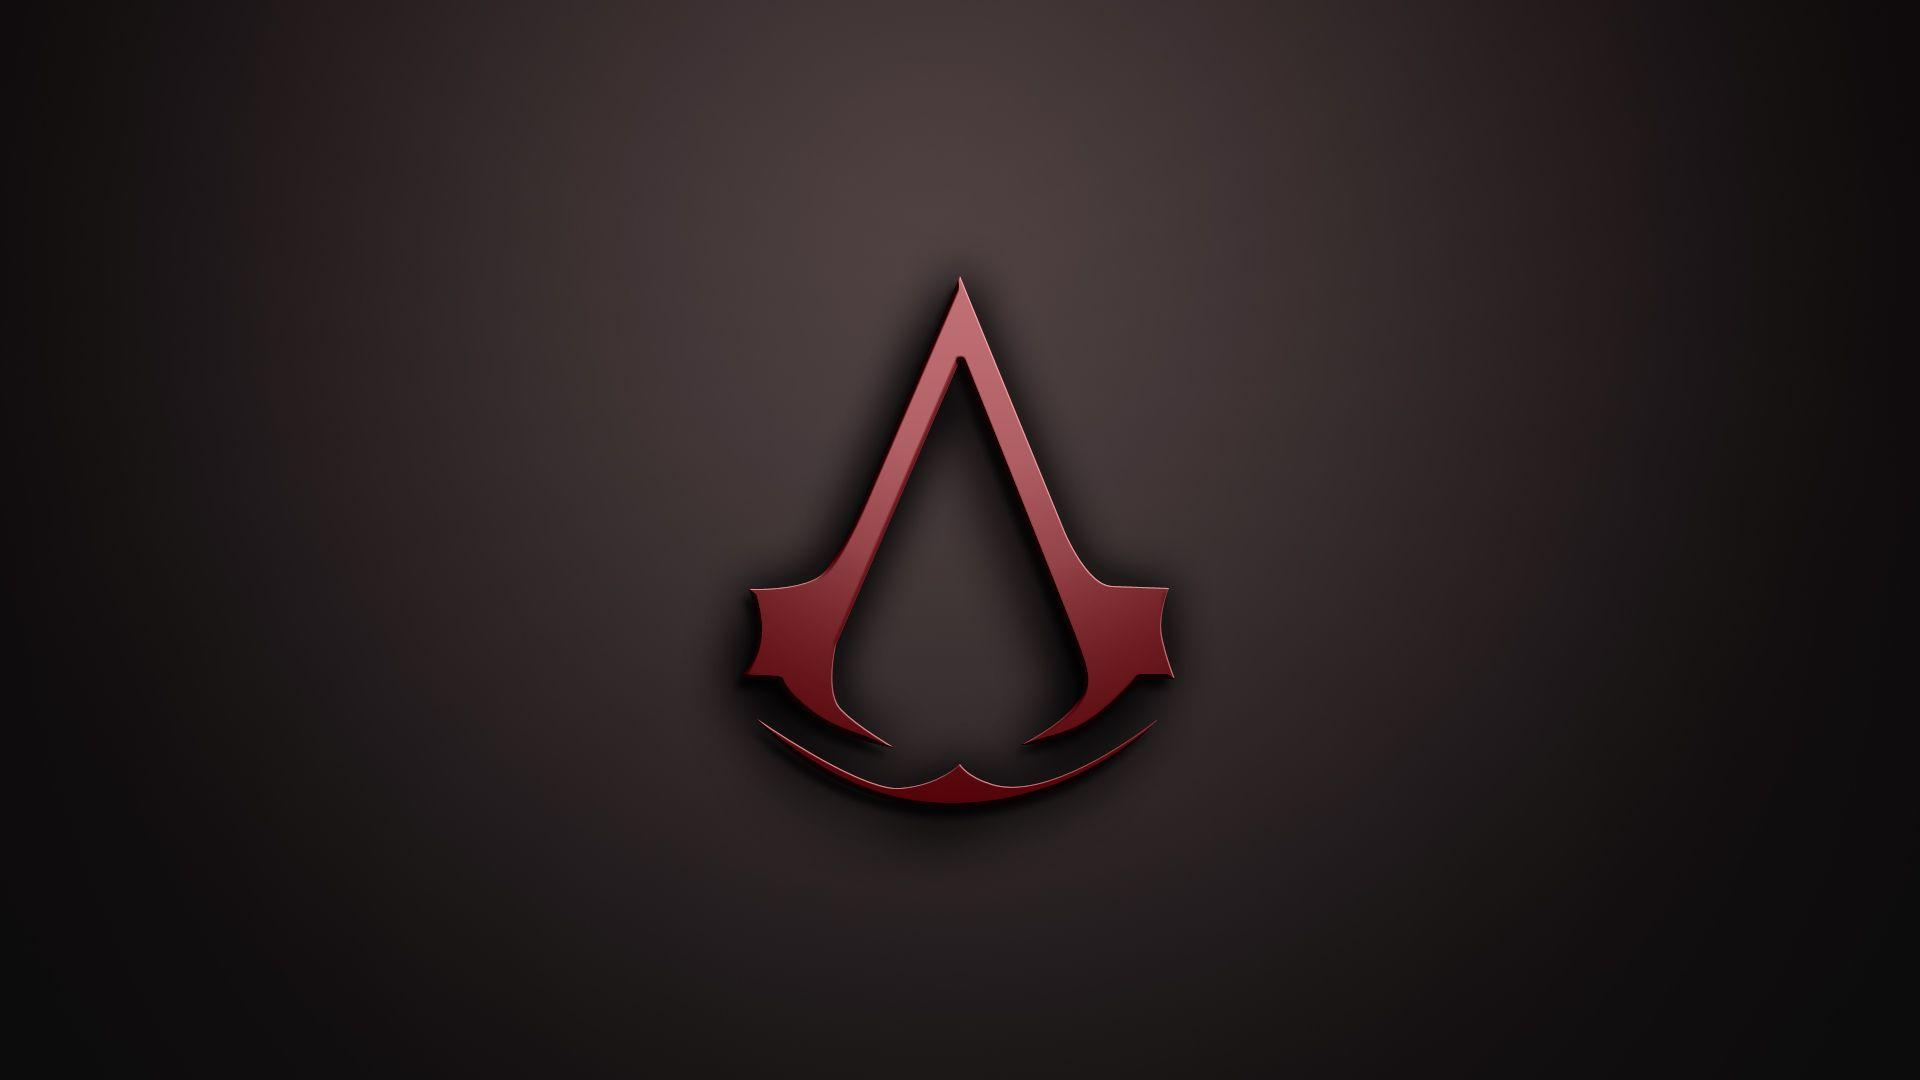 assassin's creed logo wallpapers - wallpaper cave